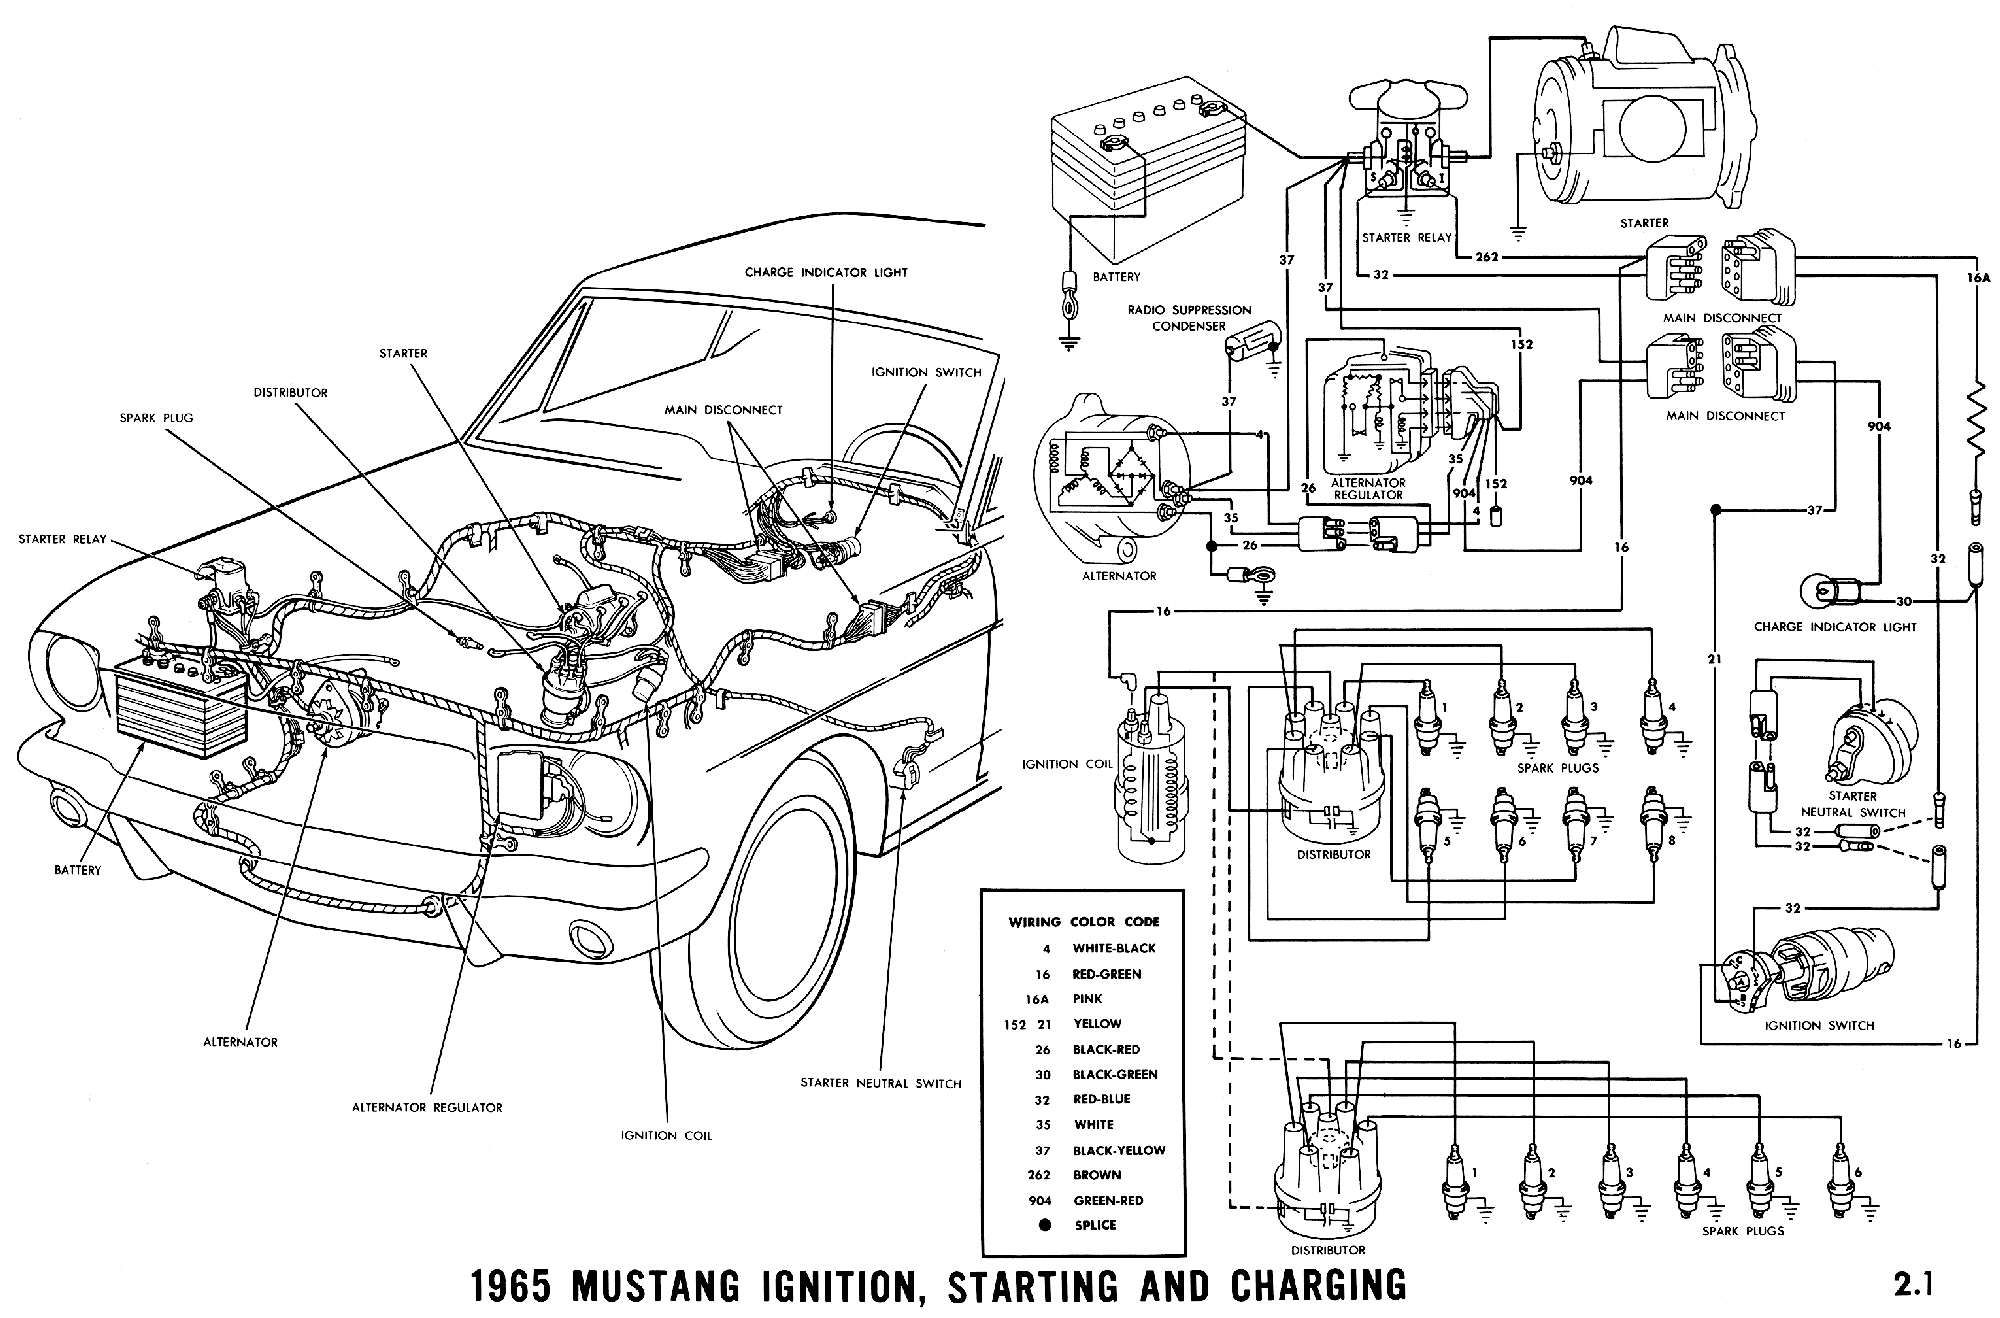 1965 Mustang Wiring Diagrams - Average Joe Restoration | Mustang engine, 1965  mustang, Classic mustang